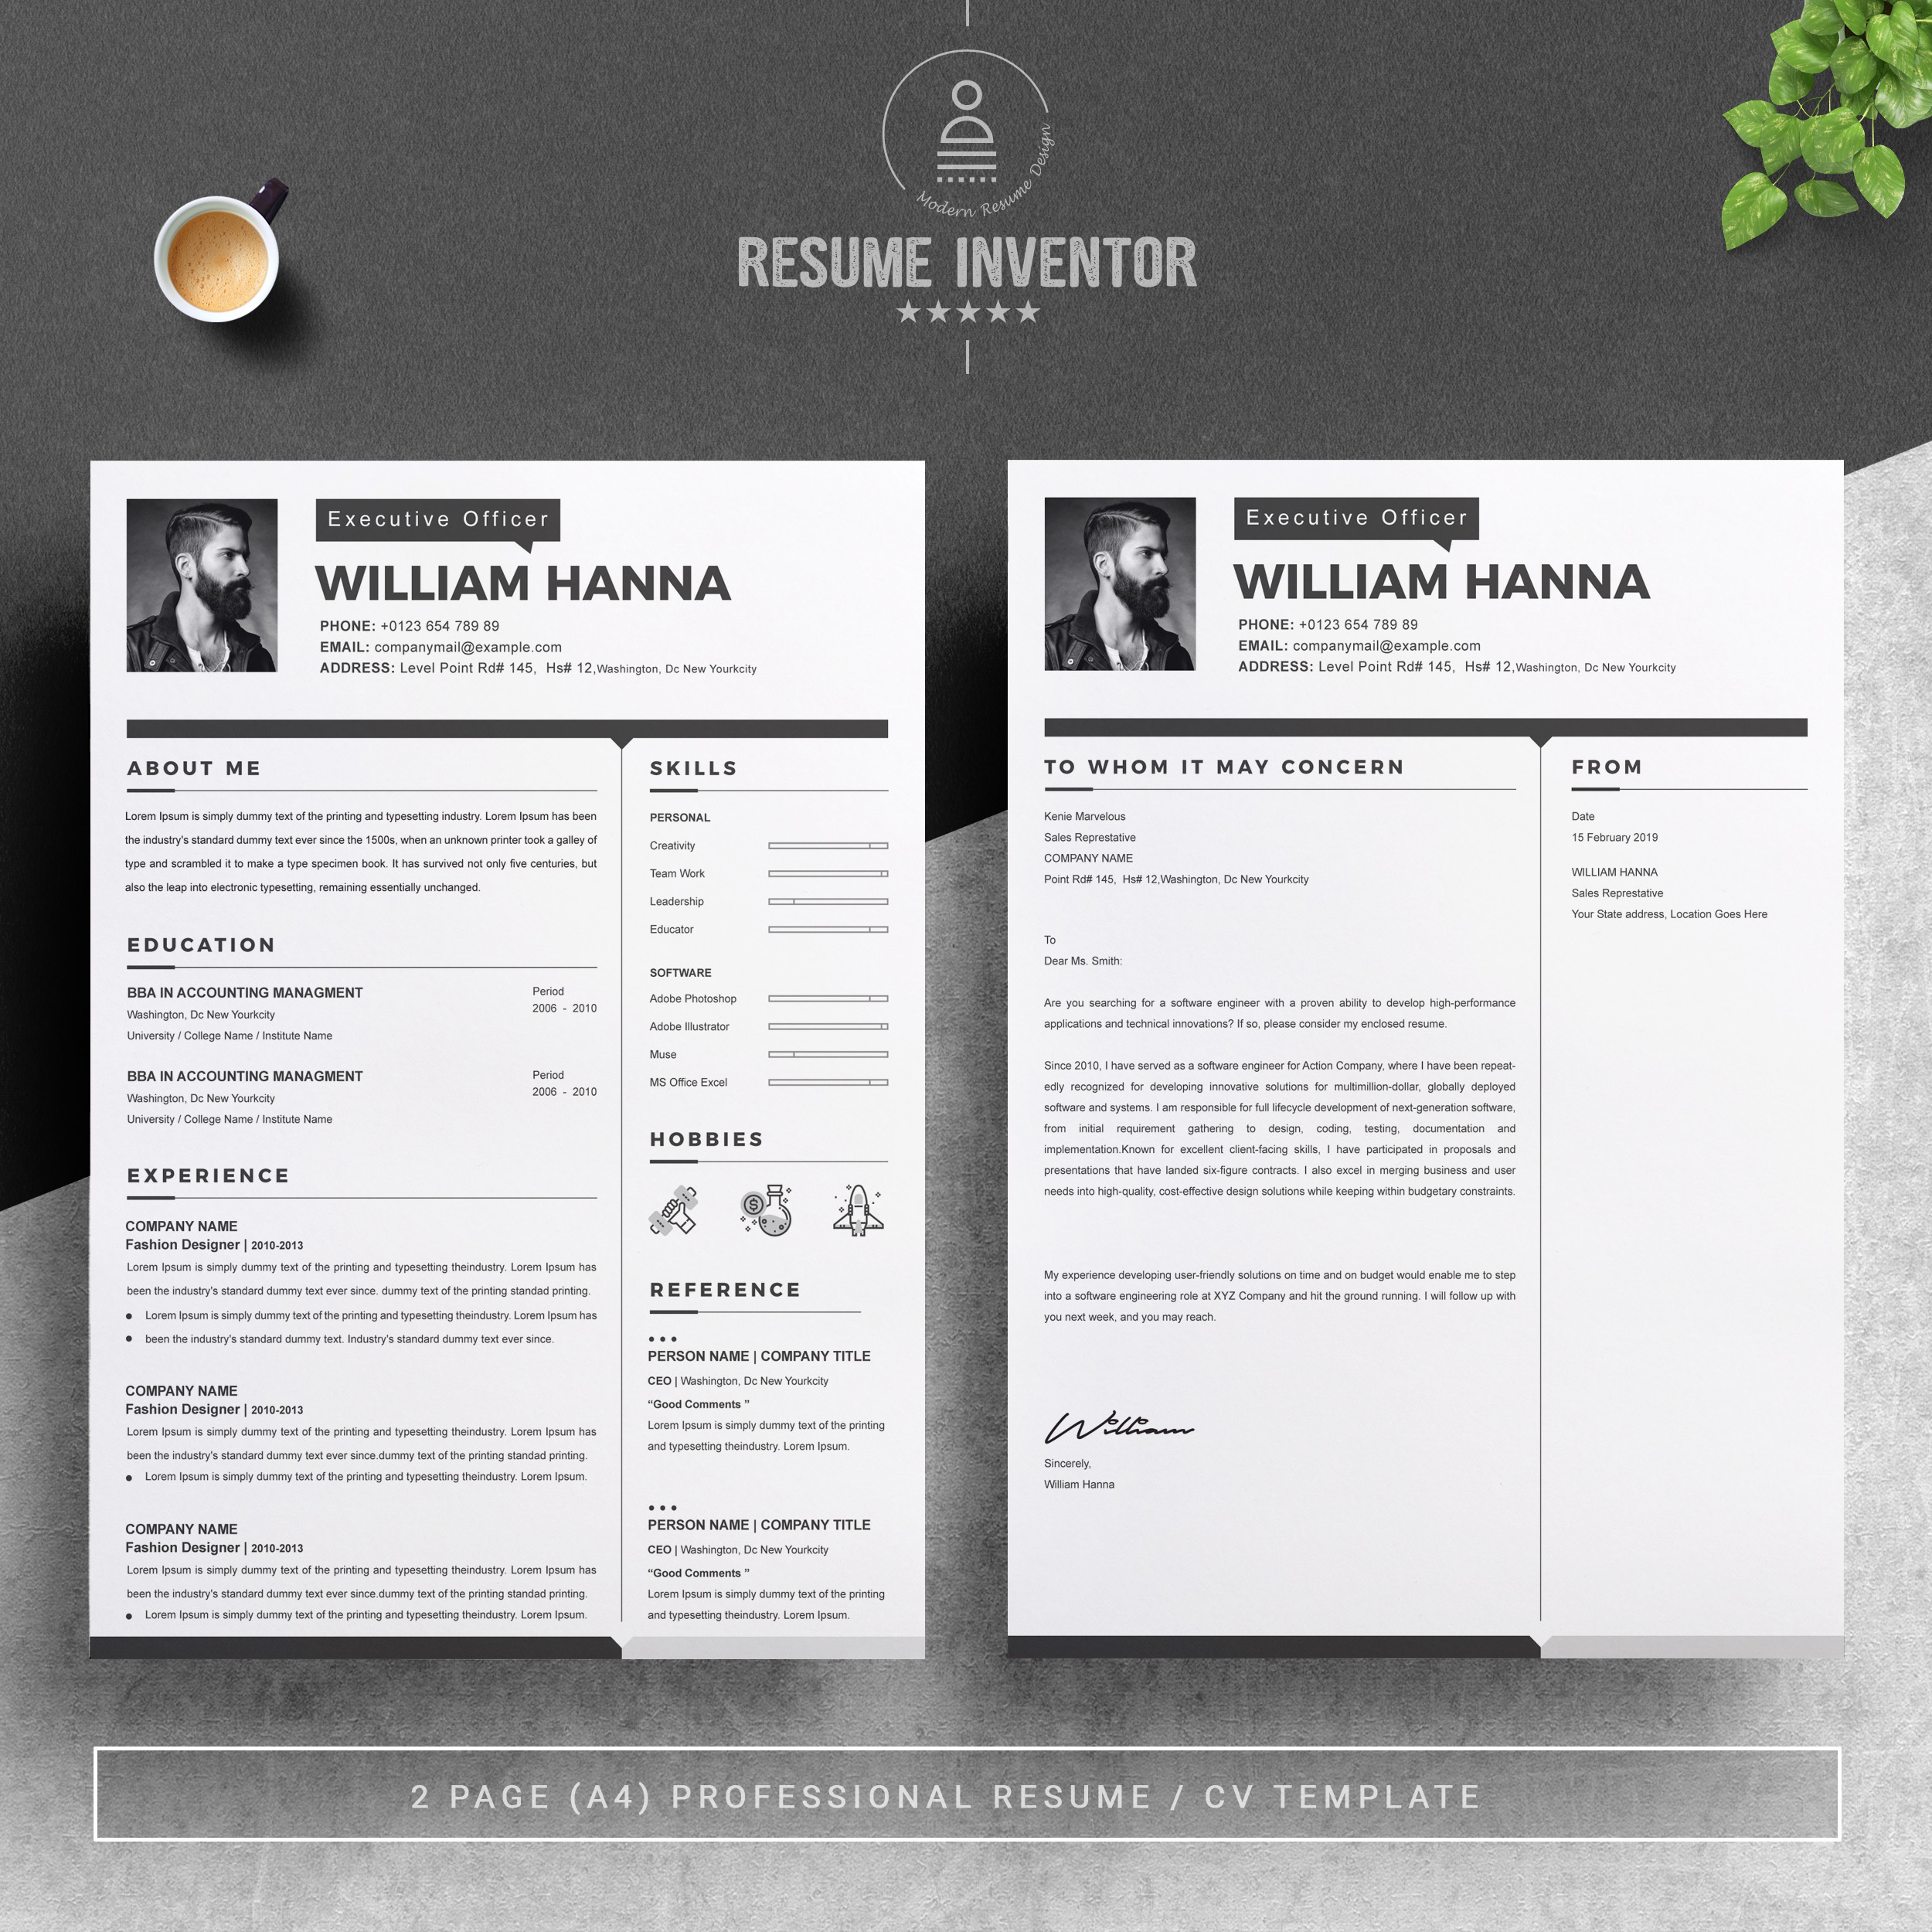 resume template with cover letter crella format free design clerical job duties for new Resume 2 Page Resume Format